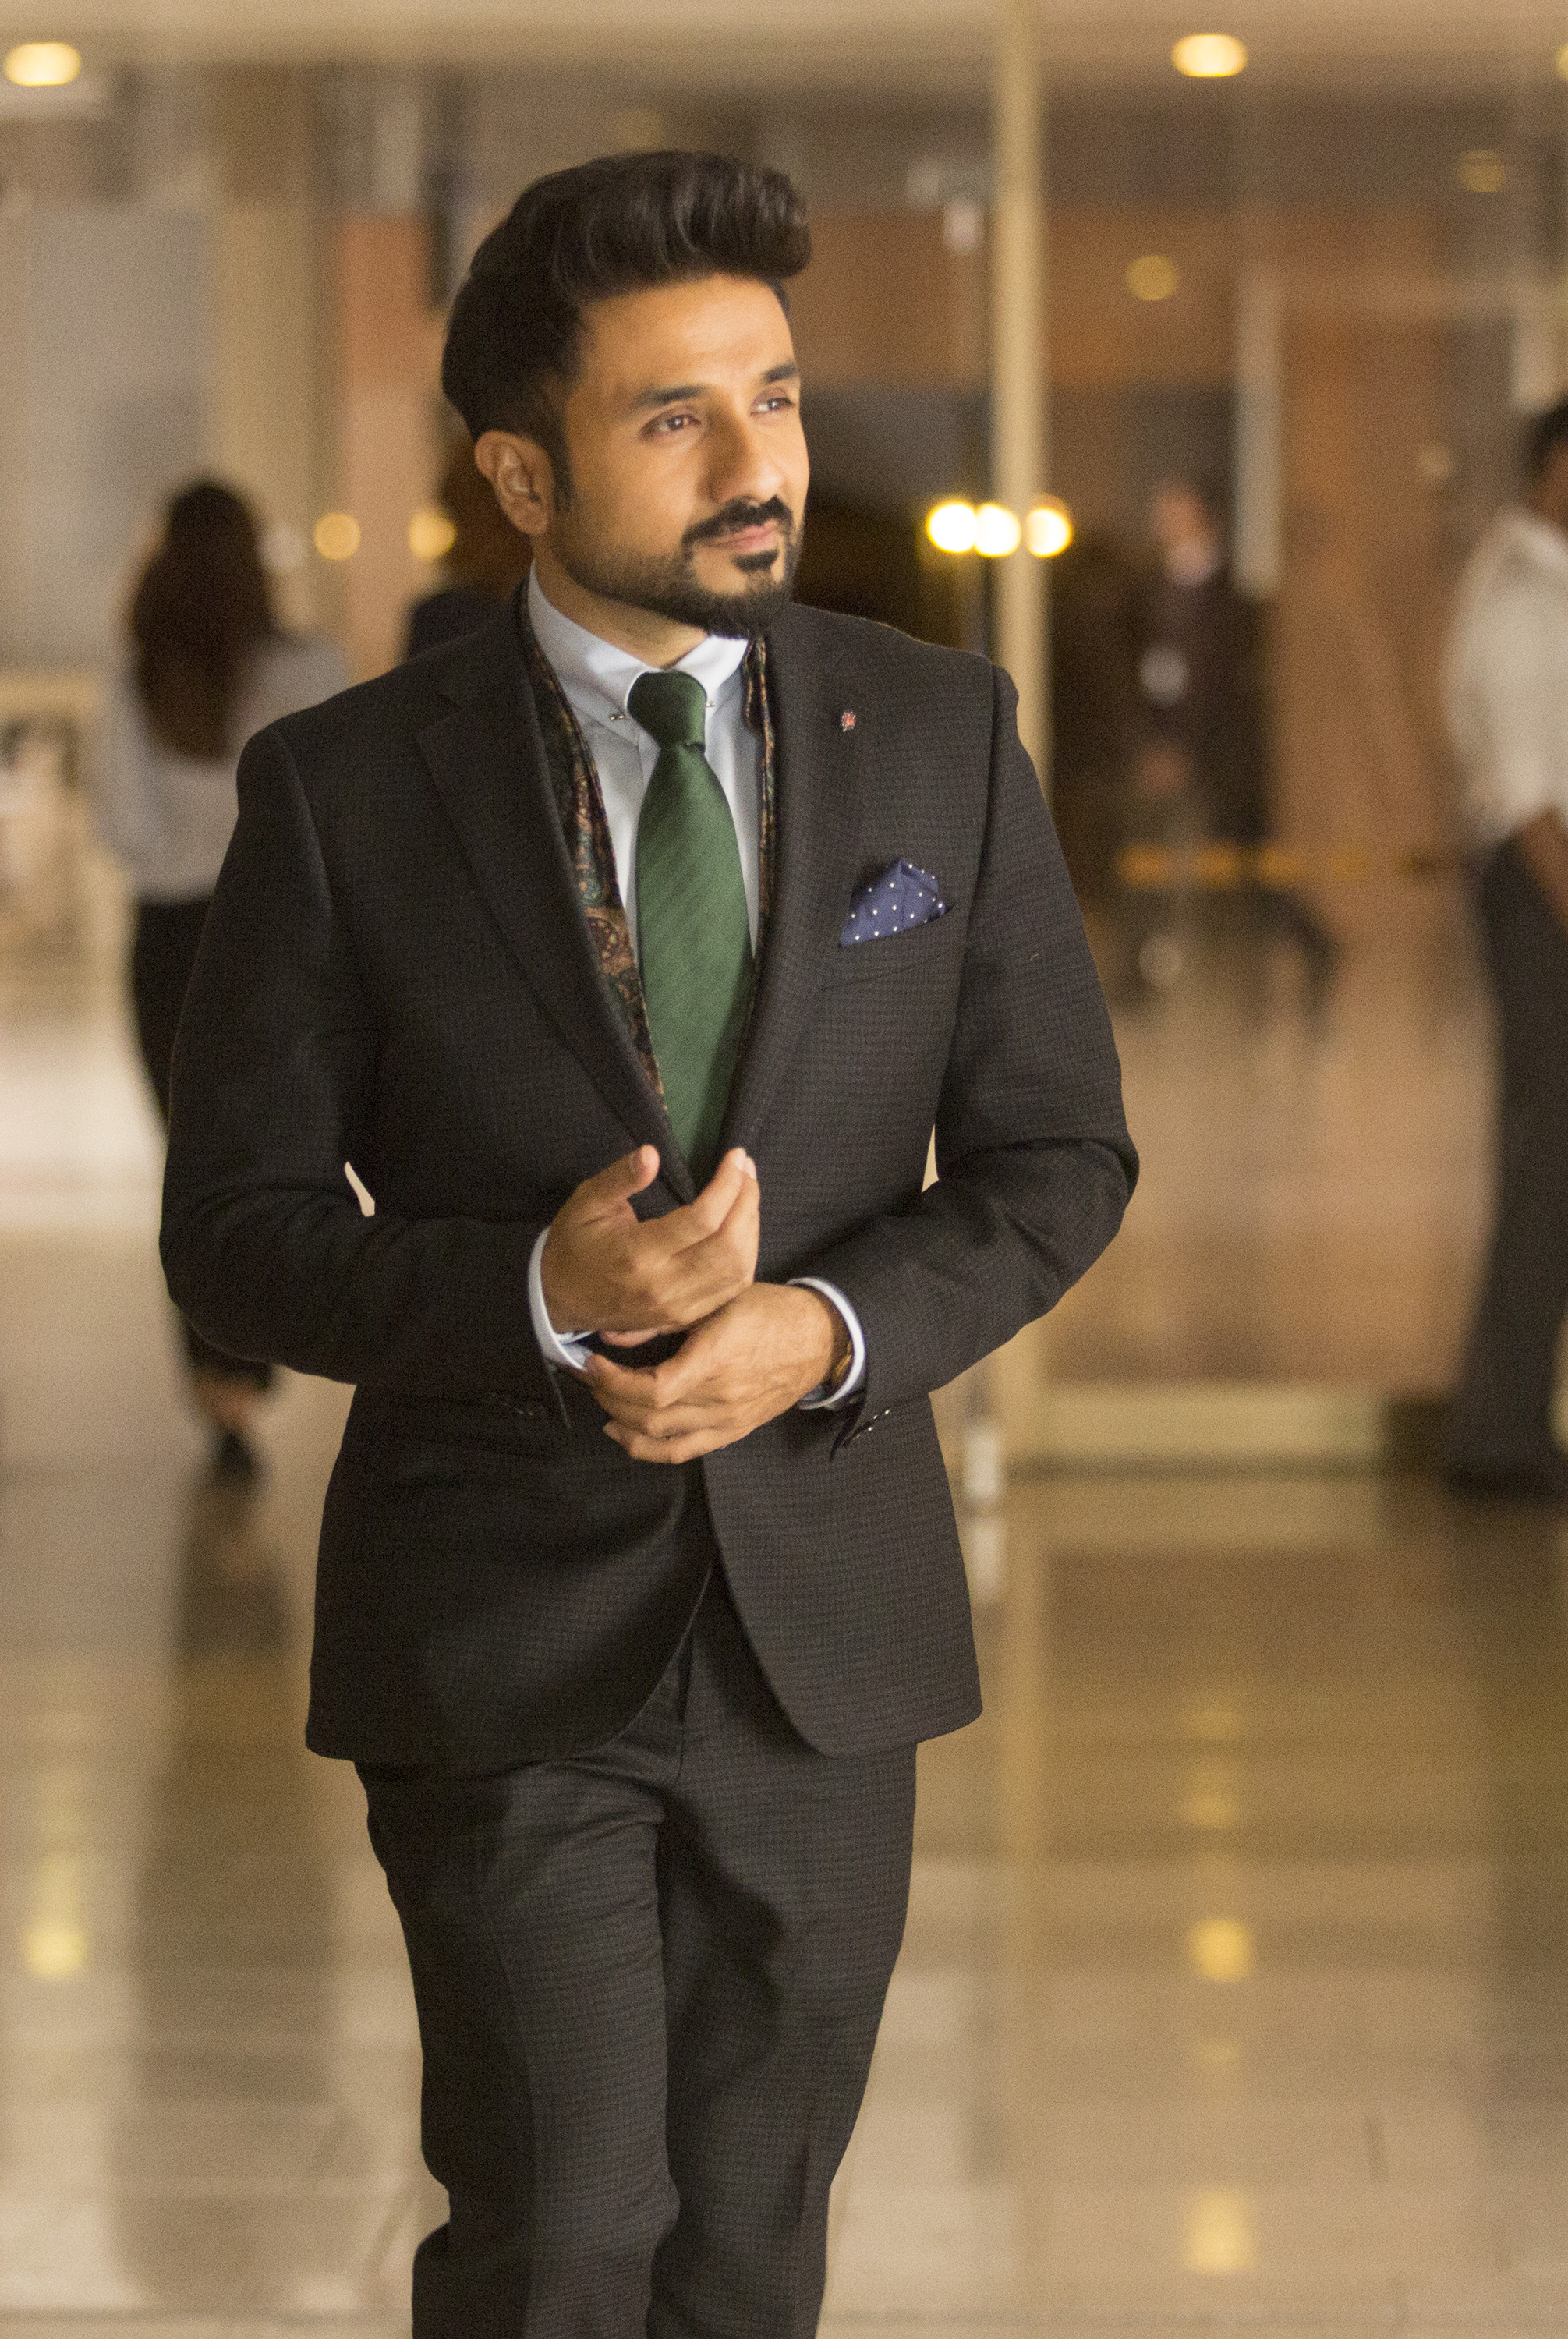 Vir Das as Jai Datta in 'Whiskey Cavalier'. (Source: ABC)